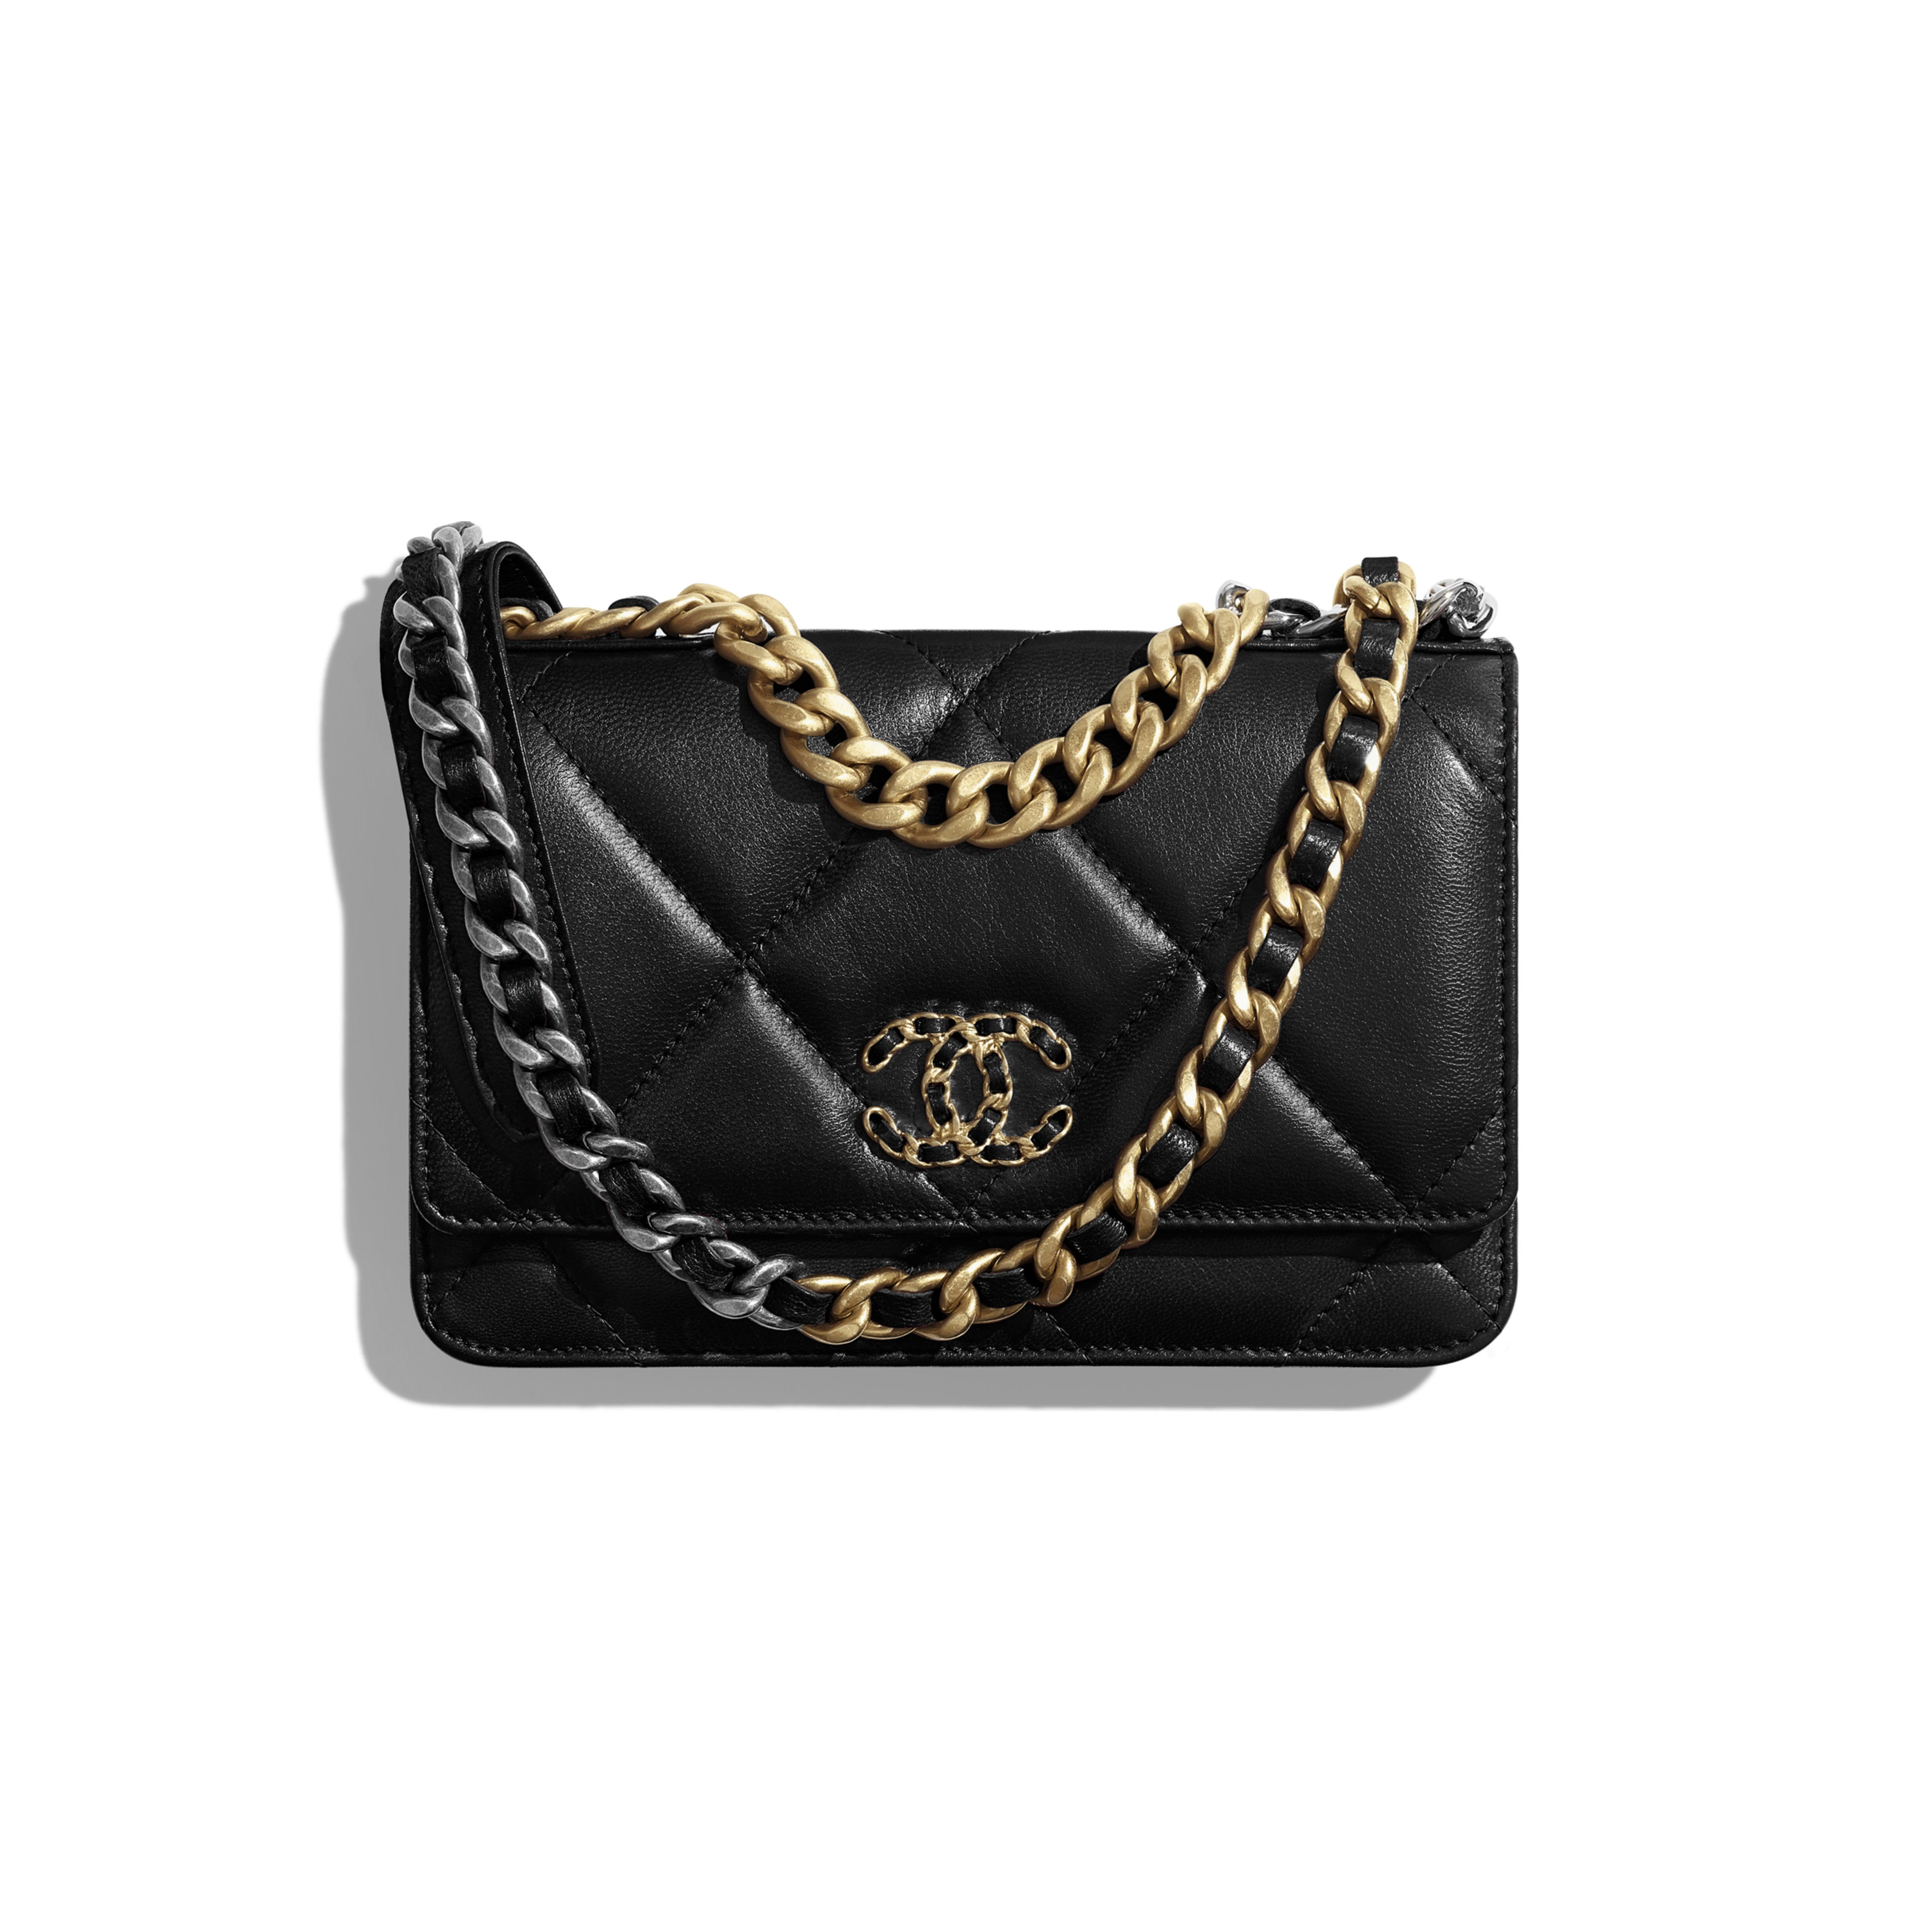 CHANEL 19 Wallet on Chain - Black - Goatskin, Gold-Tone, Silver-Tone & Ruthenium-Finish Metal - Default view - see full sized version